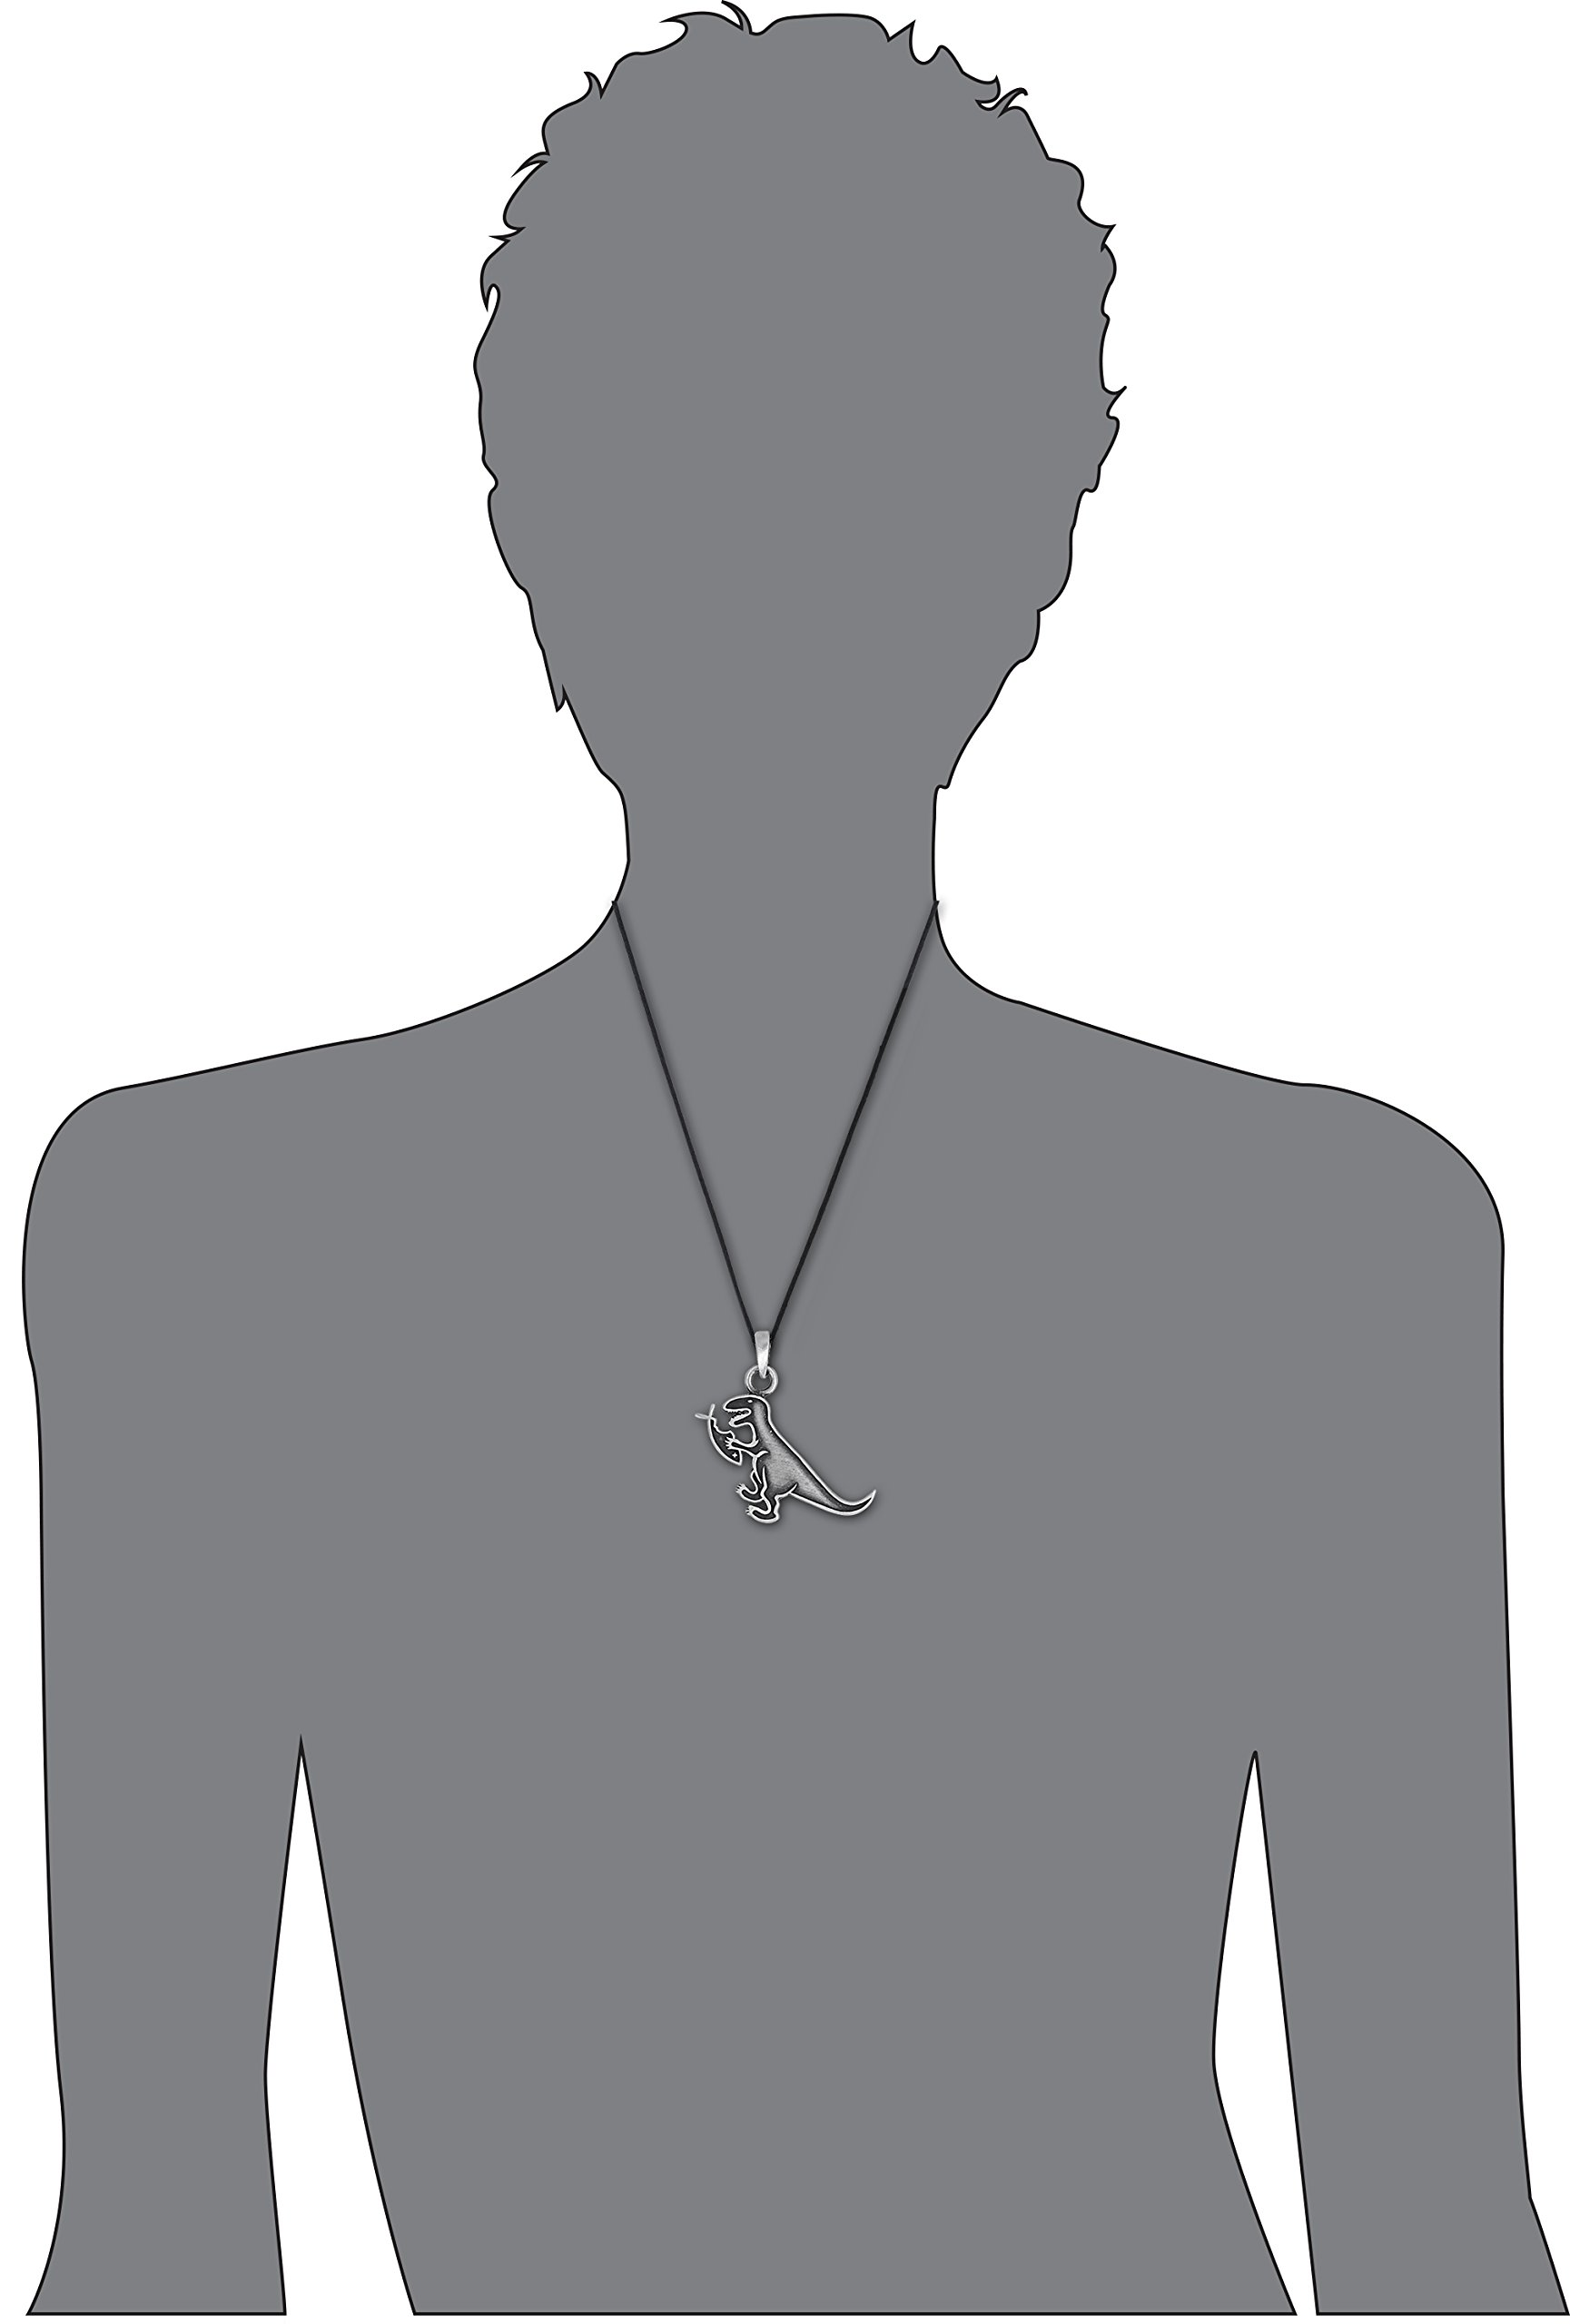 Dan's Jewelers Dinosaur Eating Christian Fish Pendant Necklace, Fine Pewter Jewelry by Dan's Jewelers (Image #2)